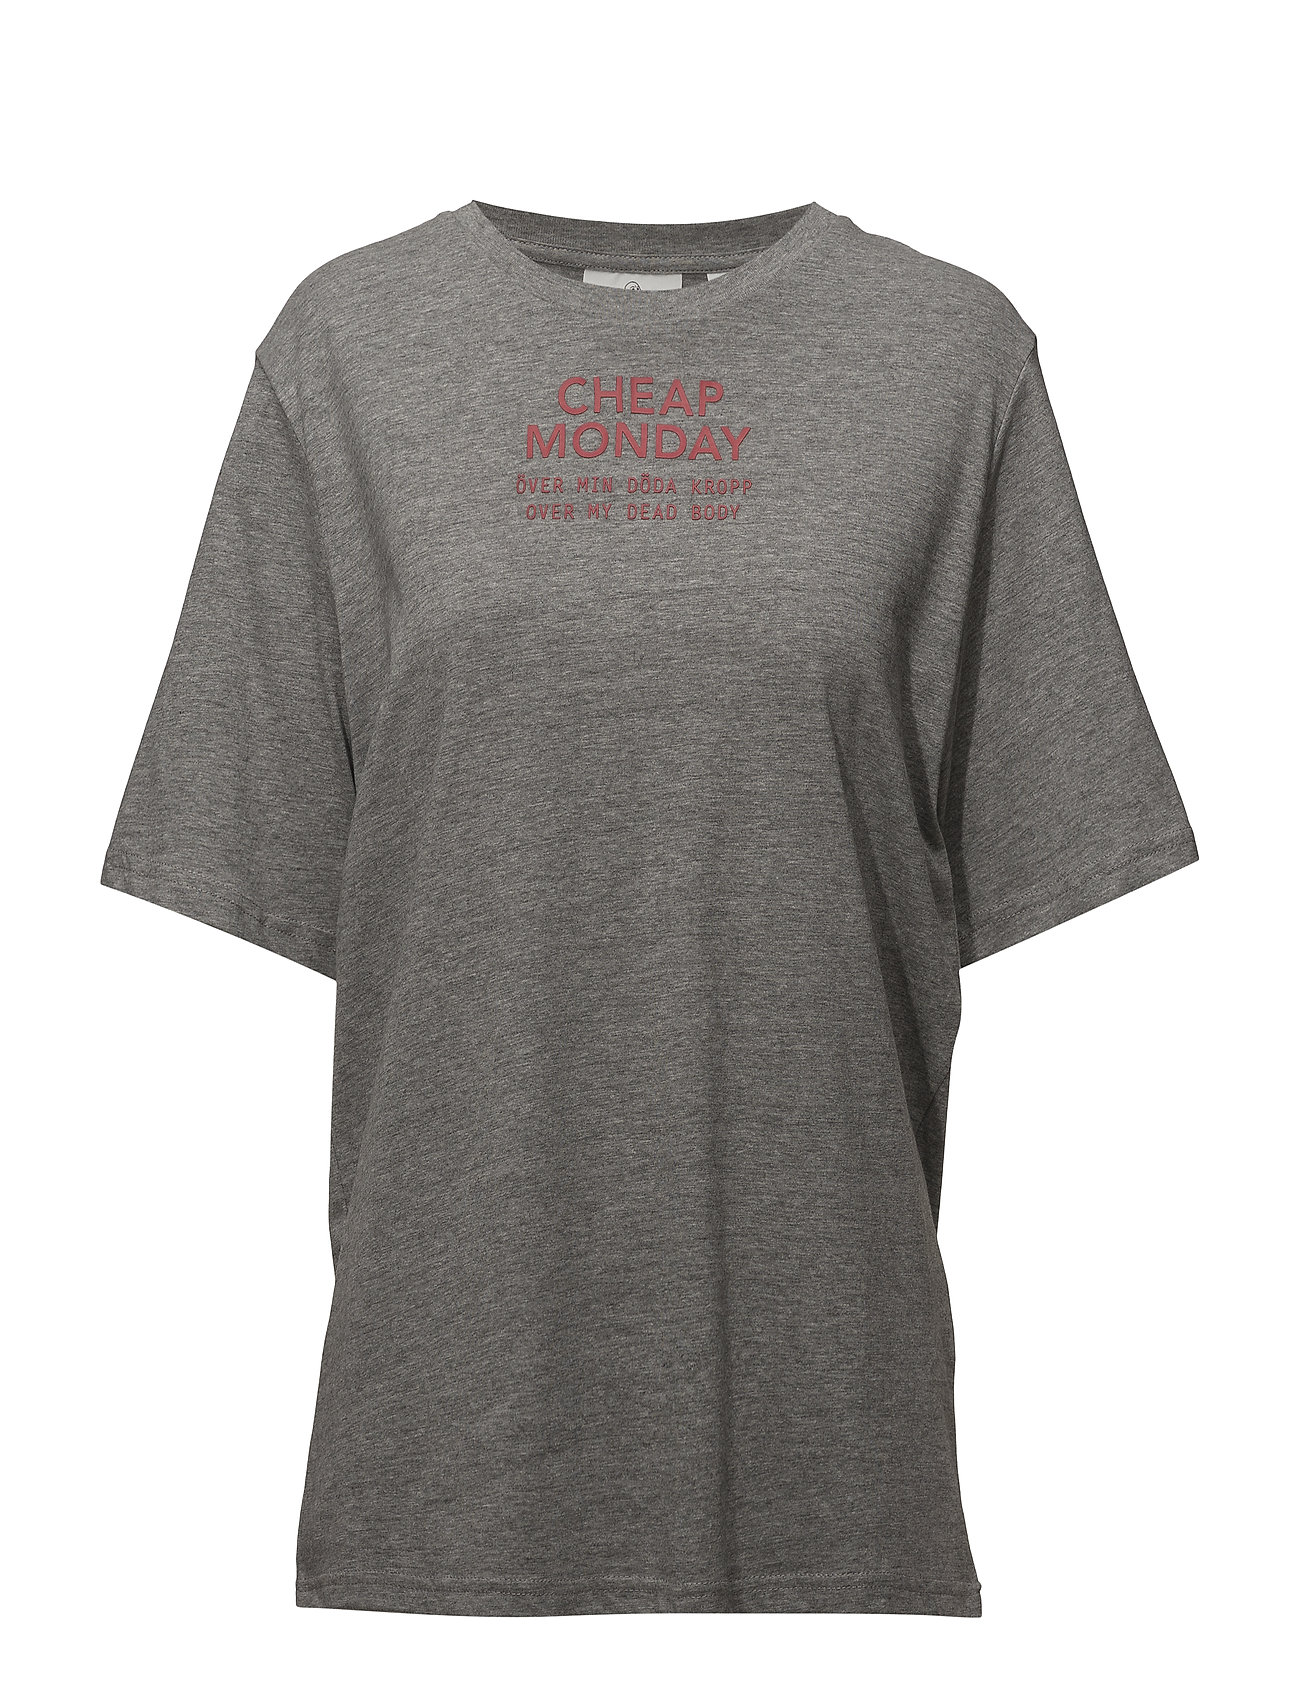 Cheap Monday Perfect tee Chp mnd sender - GREY